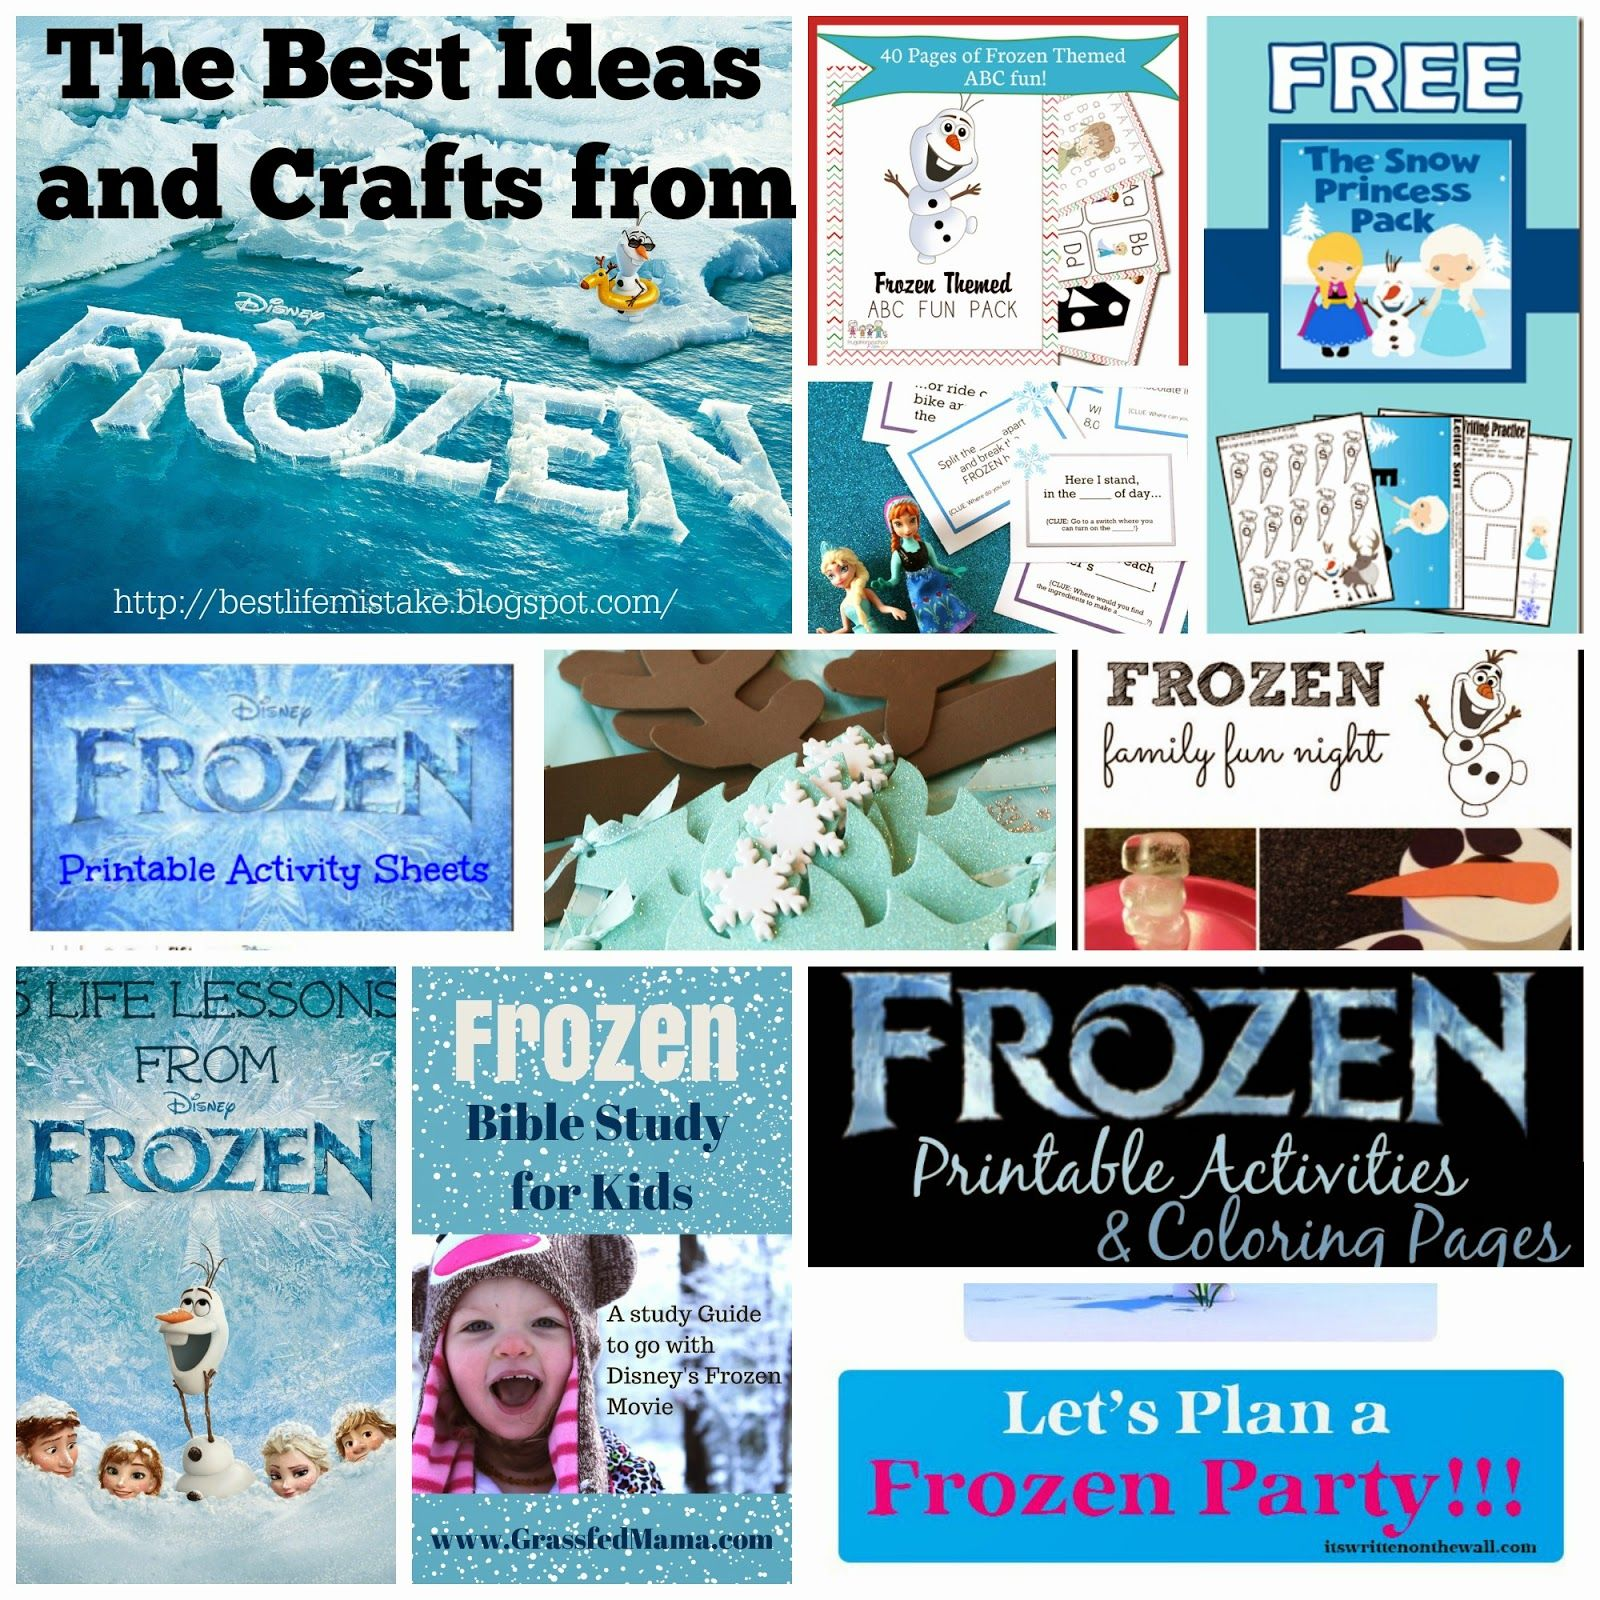 frozen crafts & ideas - great list for parties, school projects and